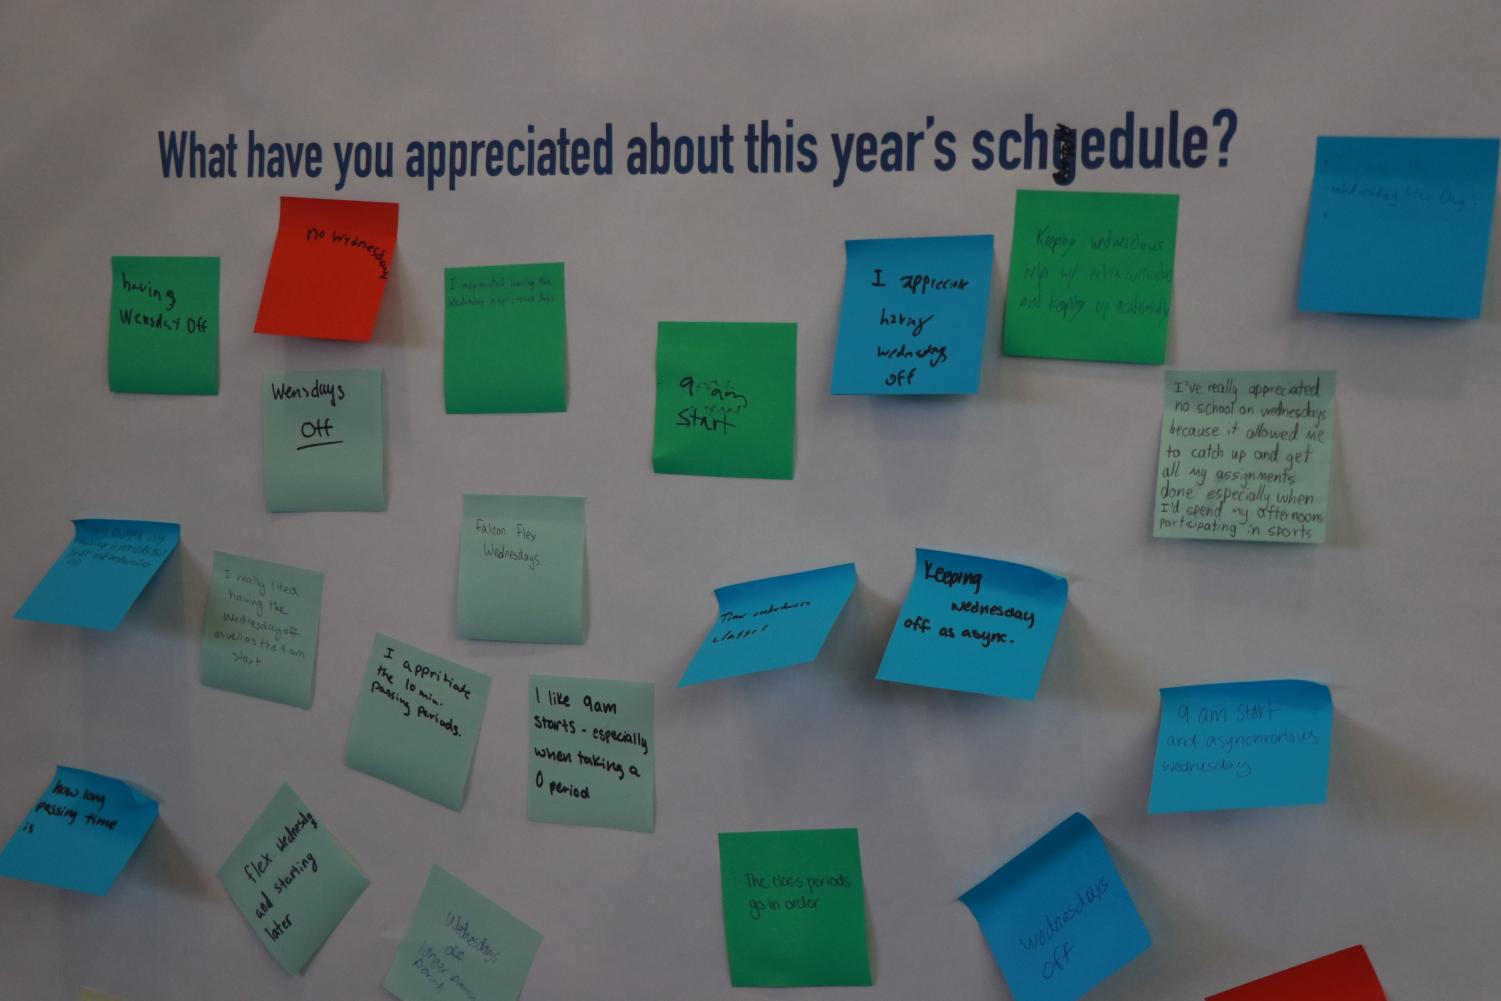 Students+Voice+Thoughts+on+Changes+Implemented+This+School+Year%2C+and+Their+Hopes+for+Next+Year